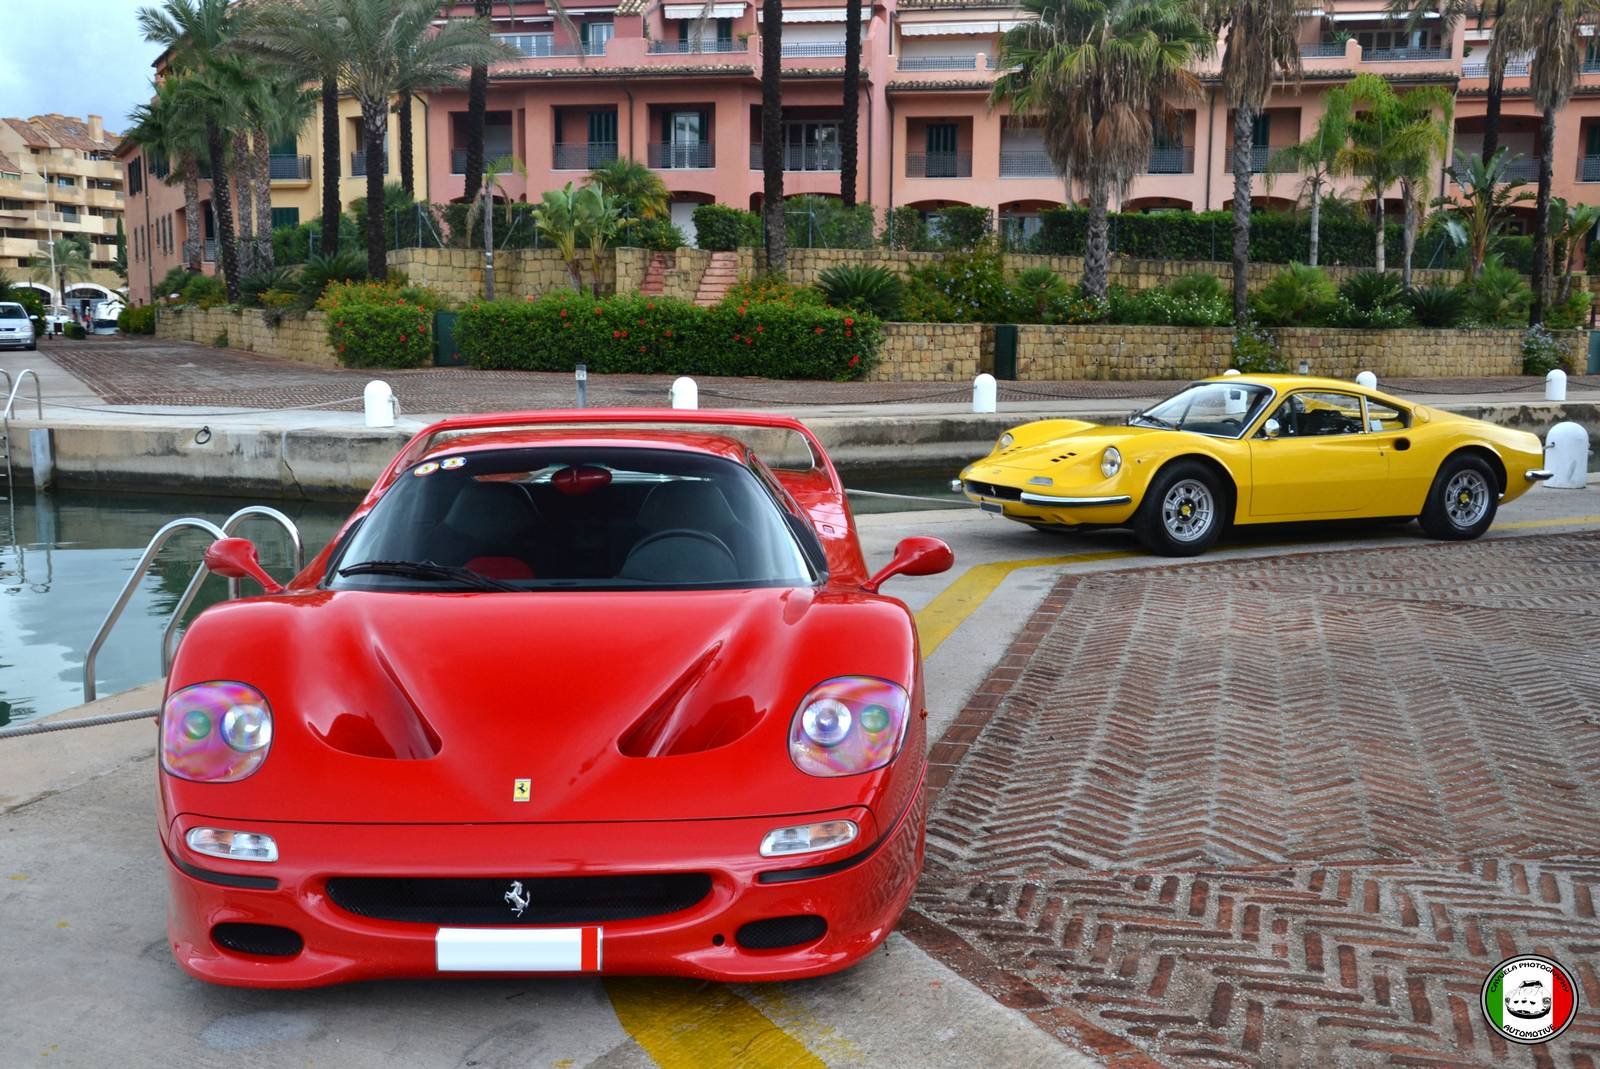 Photo Of The Day: Ferrari F50 Photoshoot in Spain - GTspirit